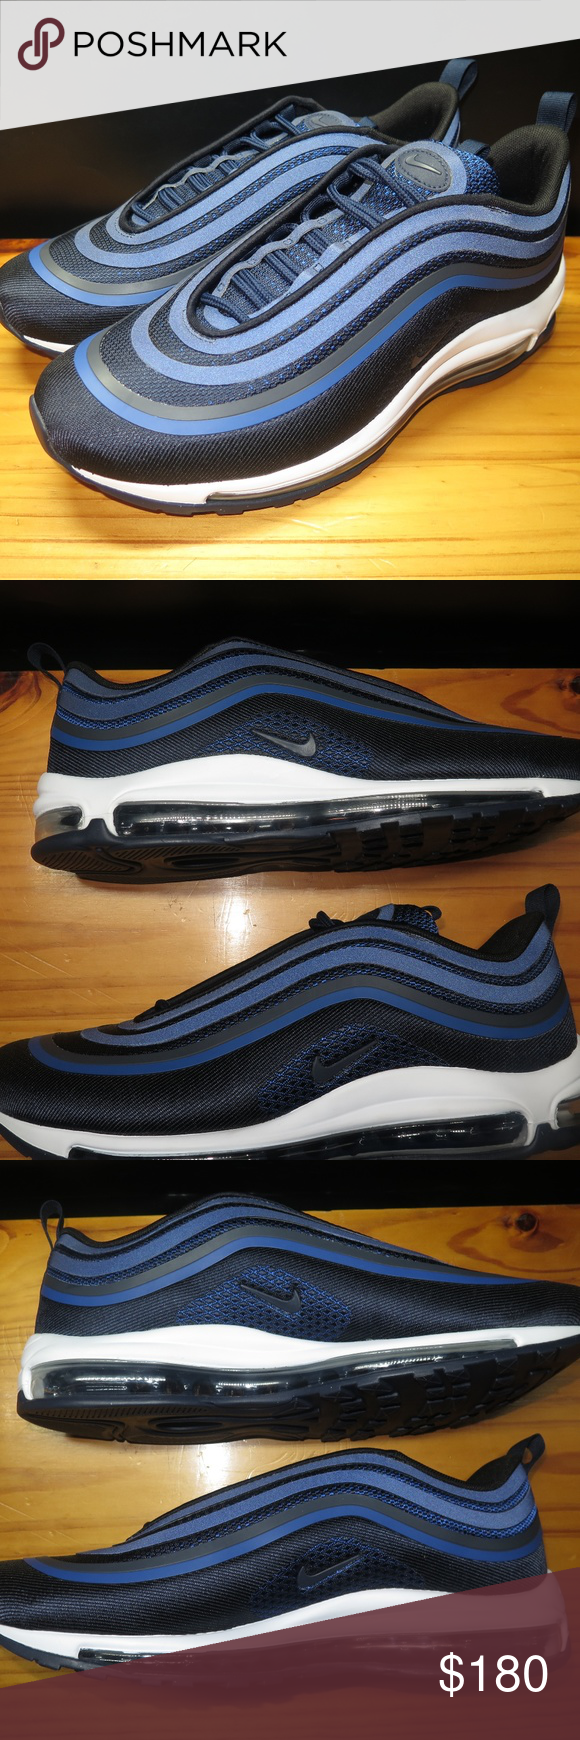 Nike Air Max 97 Ultra  17 Obsidian Navy Blue Brand New without Box Nike Air cb69e4a09fd3